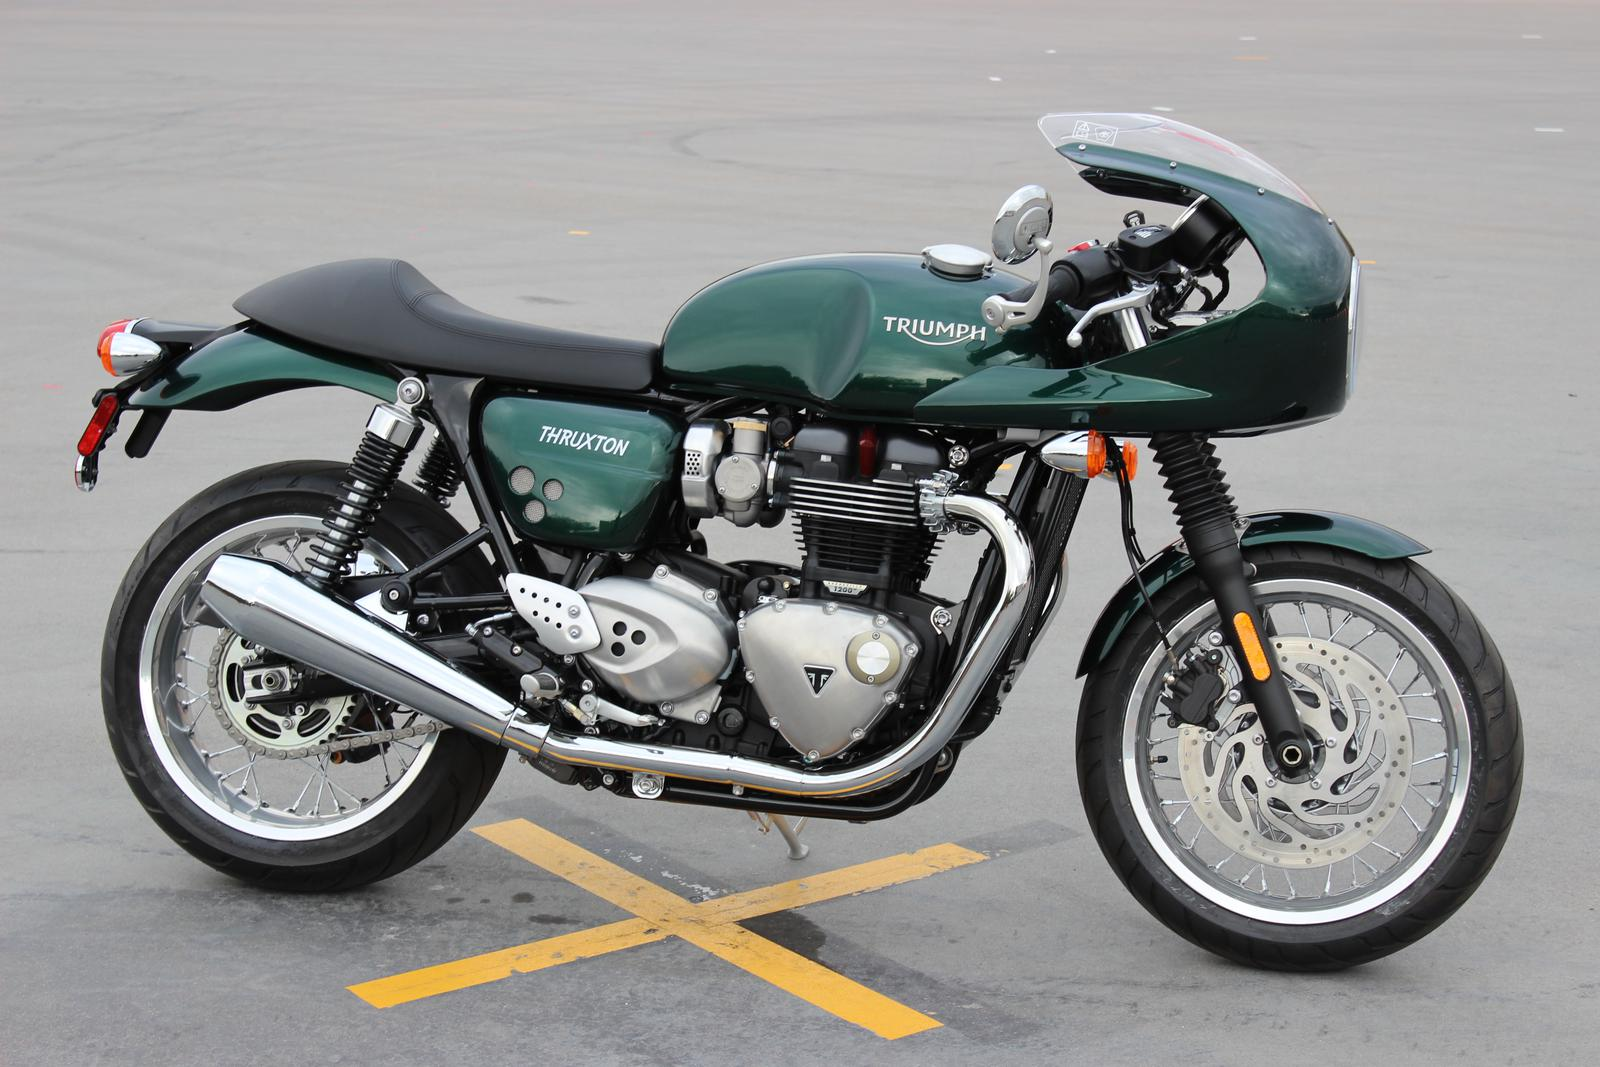 2017 Triumph THRUXTON 1200 Green (2)